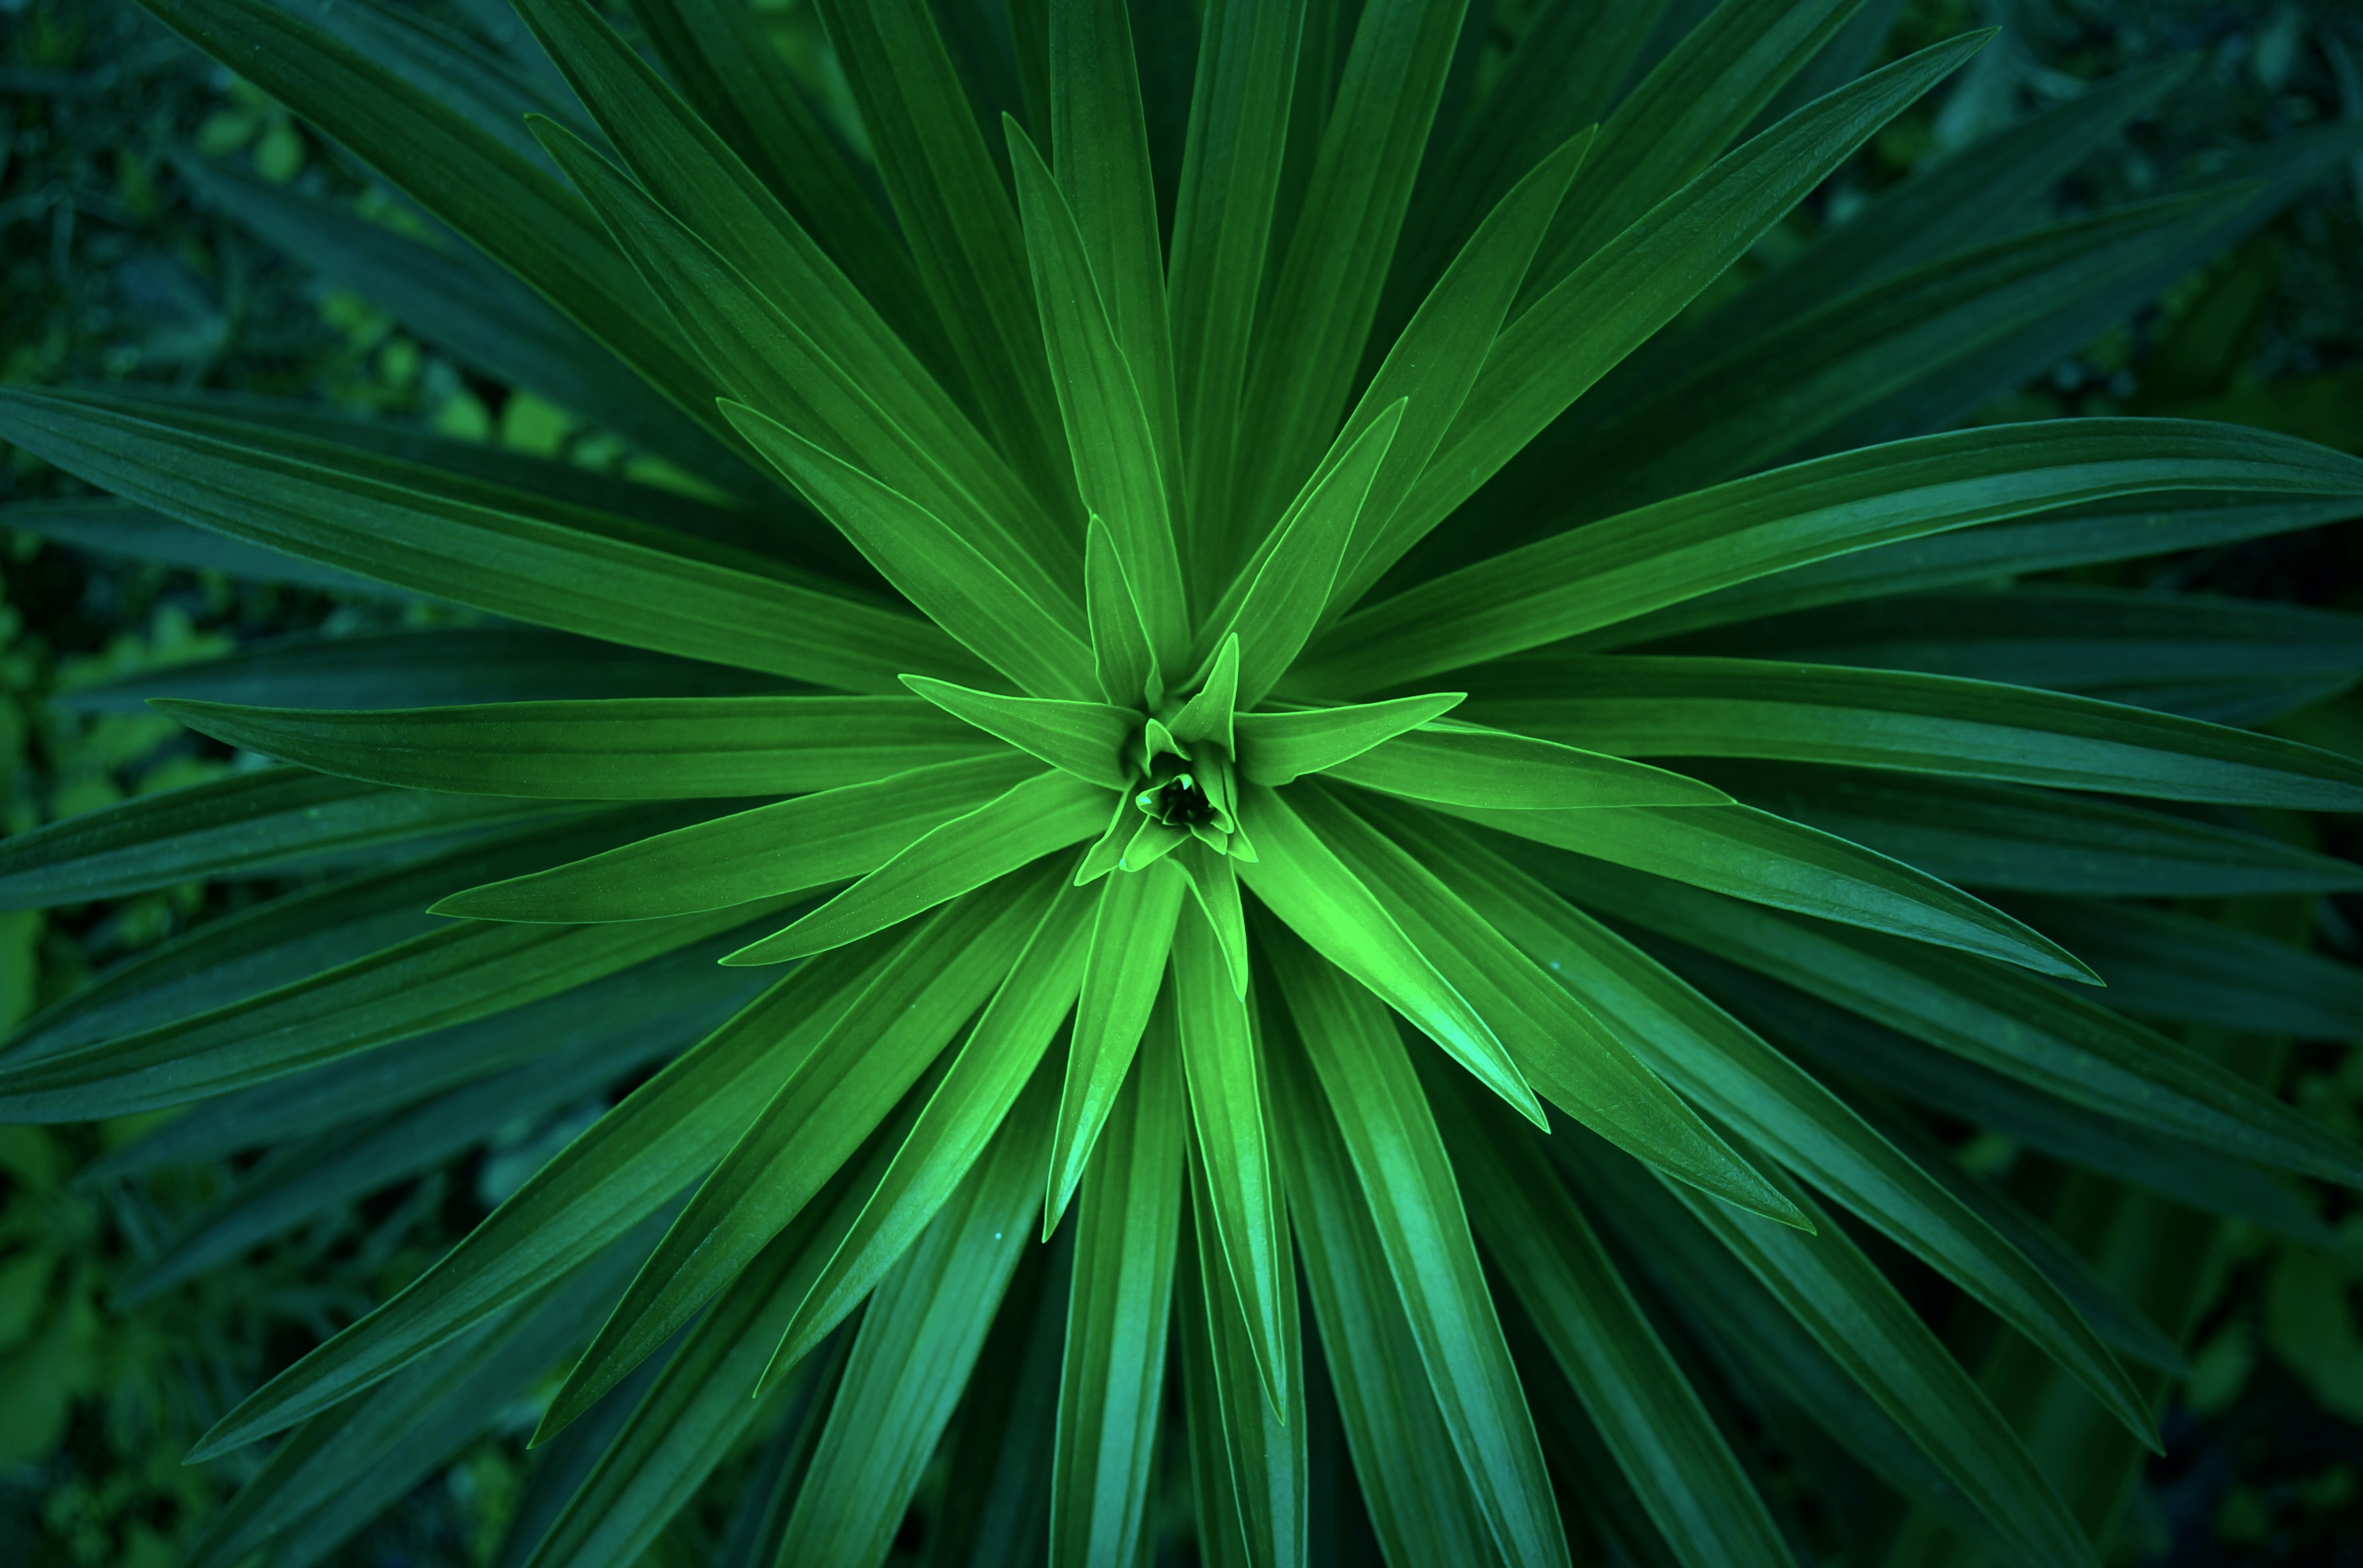 A top view of a green plant with long thin leaves forming a concentric pattern